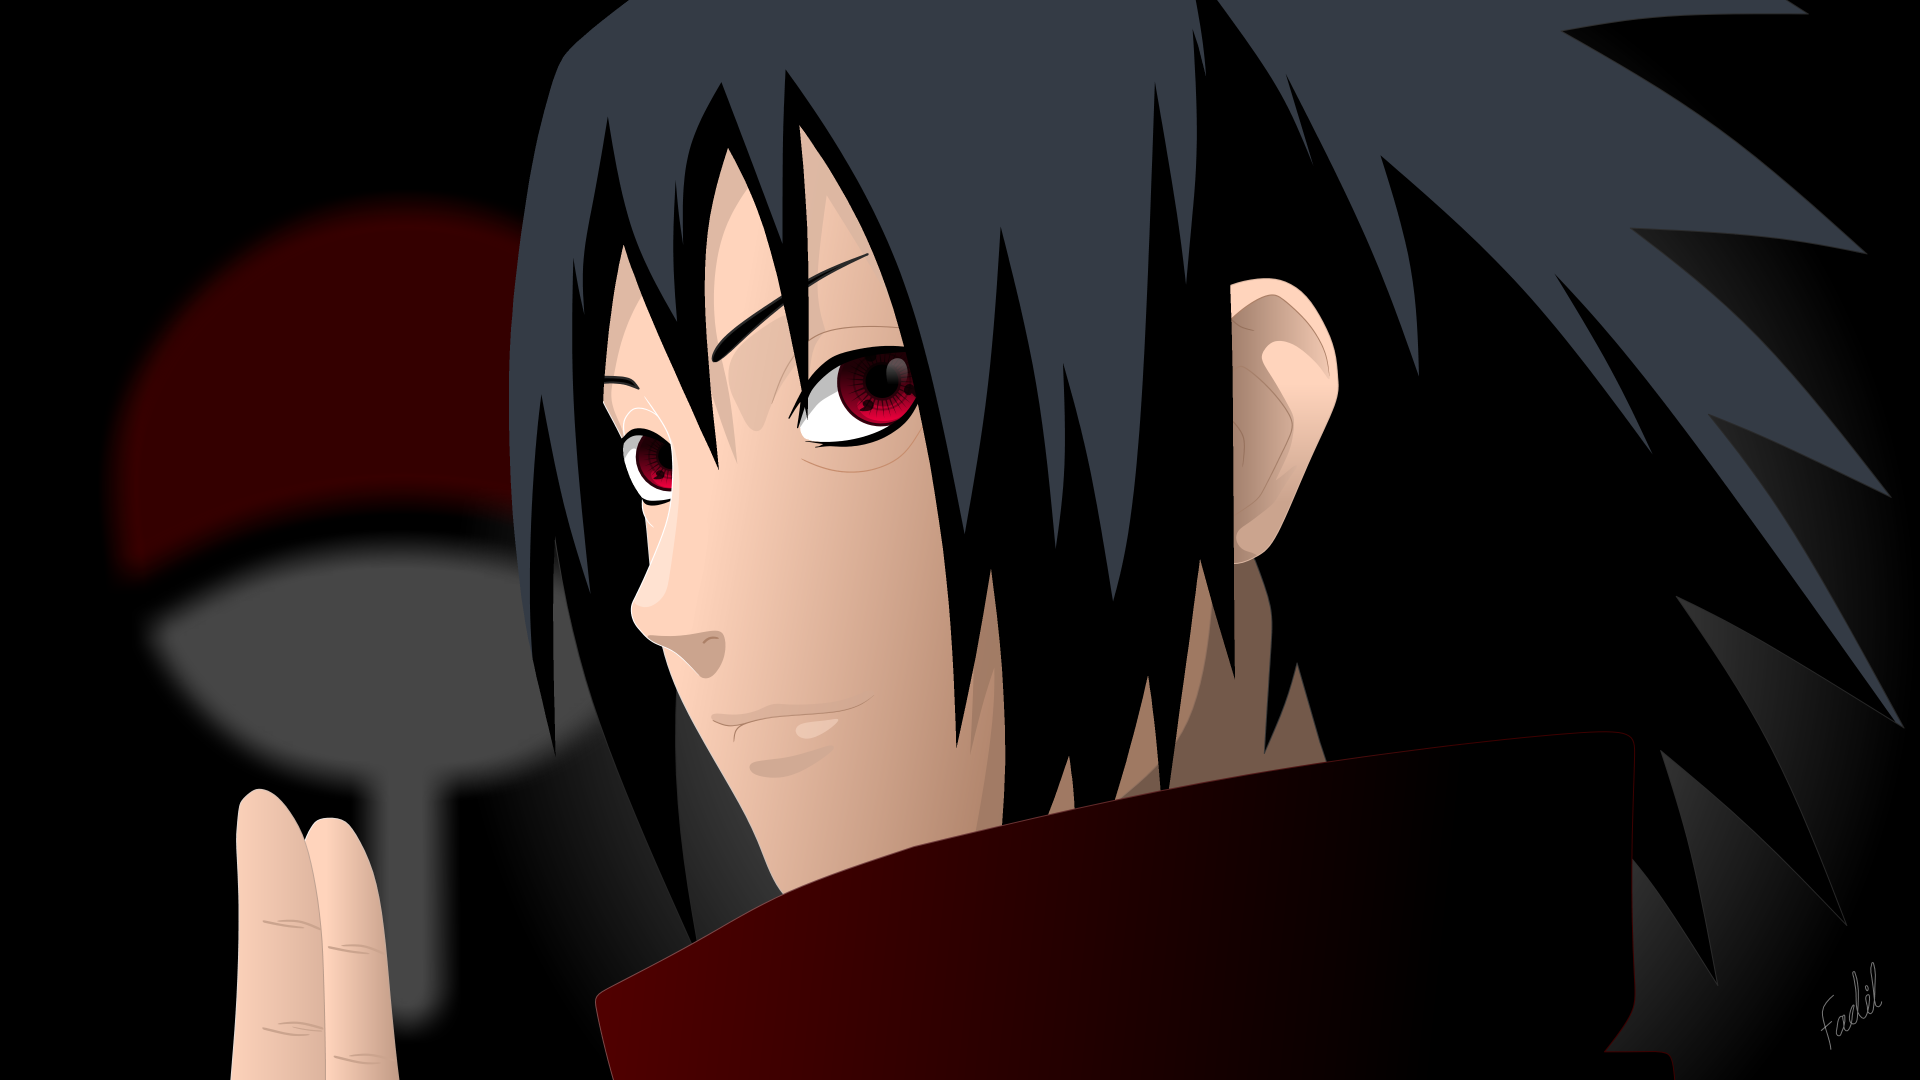 49 ] Madara Uchiha Wallpaper HD On WallpaperSafari